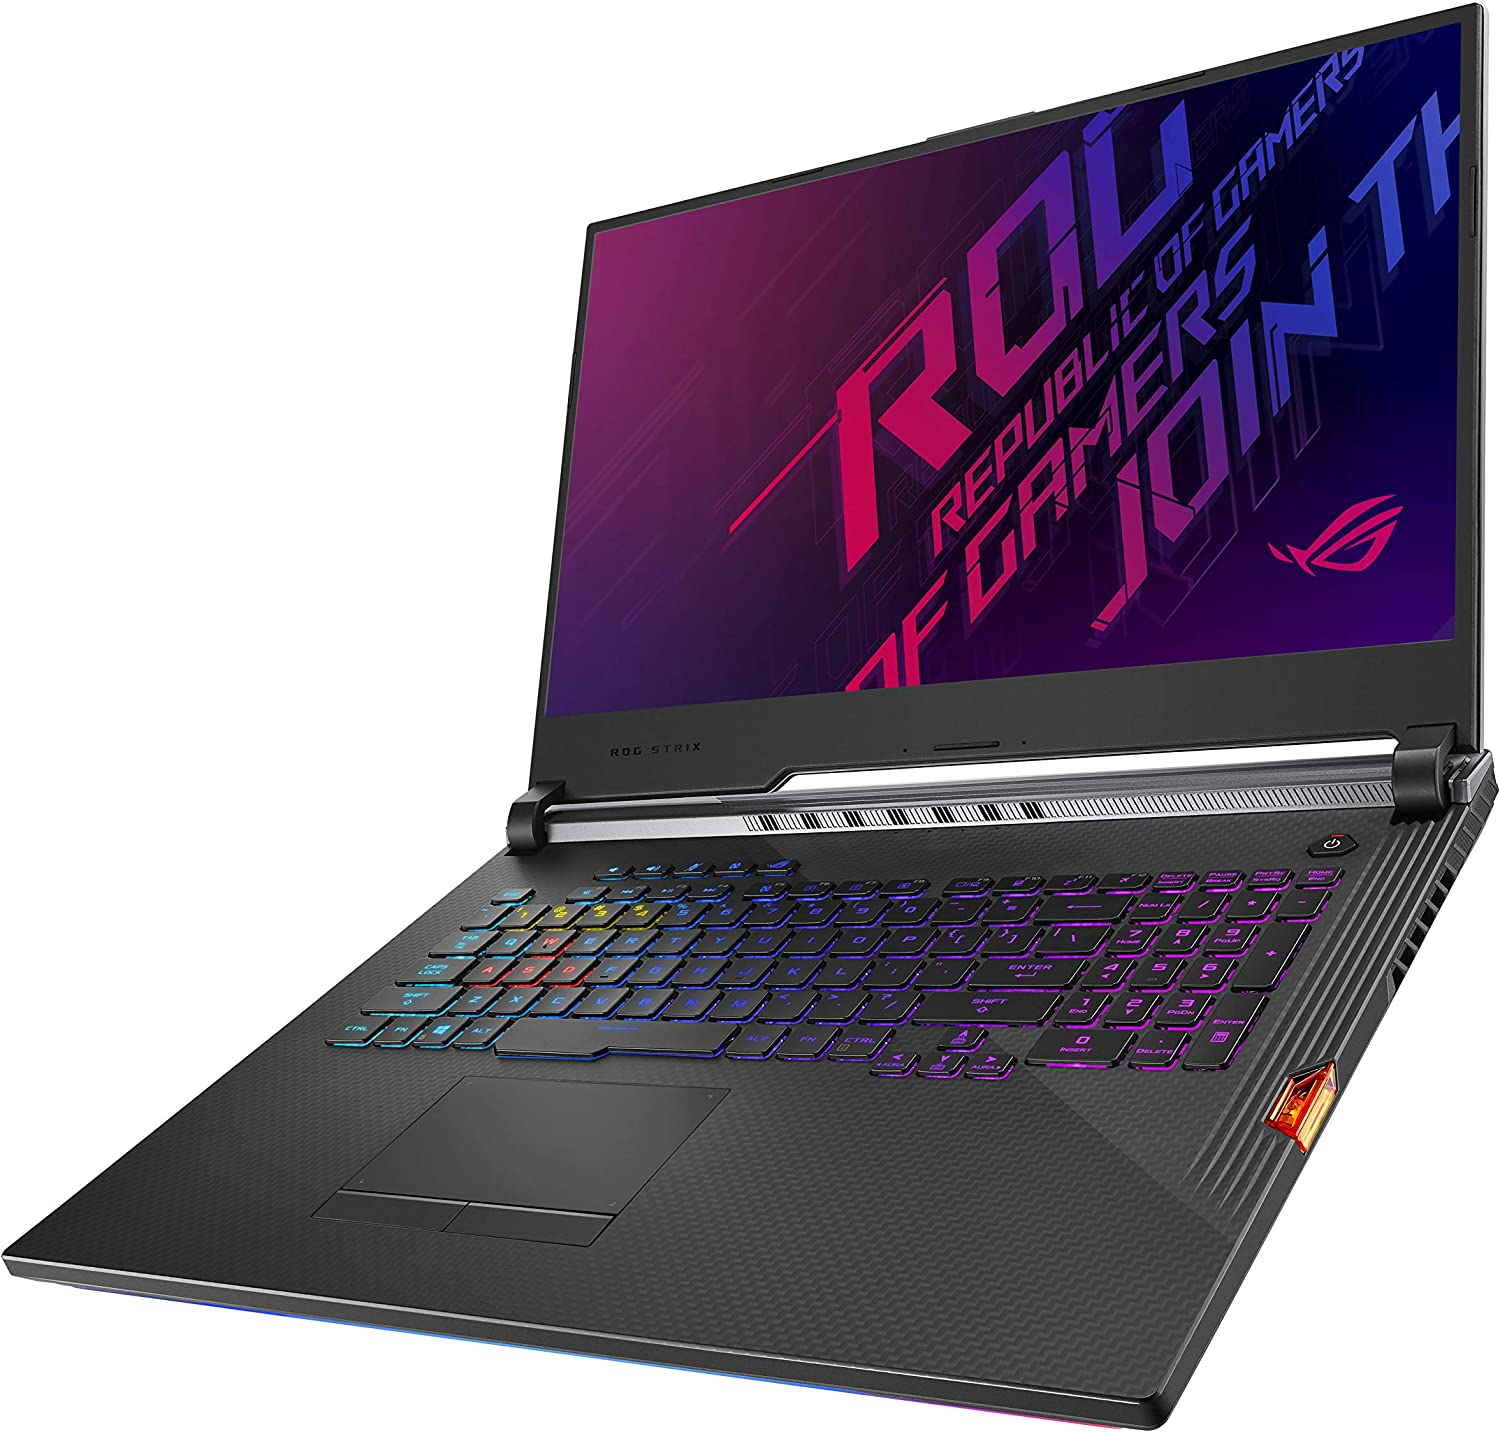 "ASUS ROG Strix Scar III (2019) Gaming Laptop, 17.3"" 240Hz IPS Type FHD, NVIDIA GeForce RTX 2070, Intel Core i7-9750H, 16GB DDR4, 1TB PCIe SSD, Per-Key RGB KB, Windows 10 Home, G731GW-DH76"